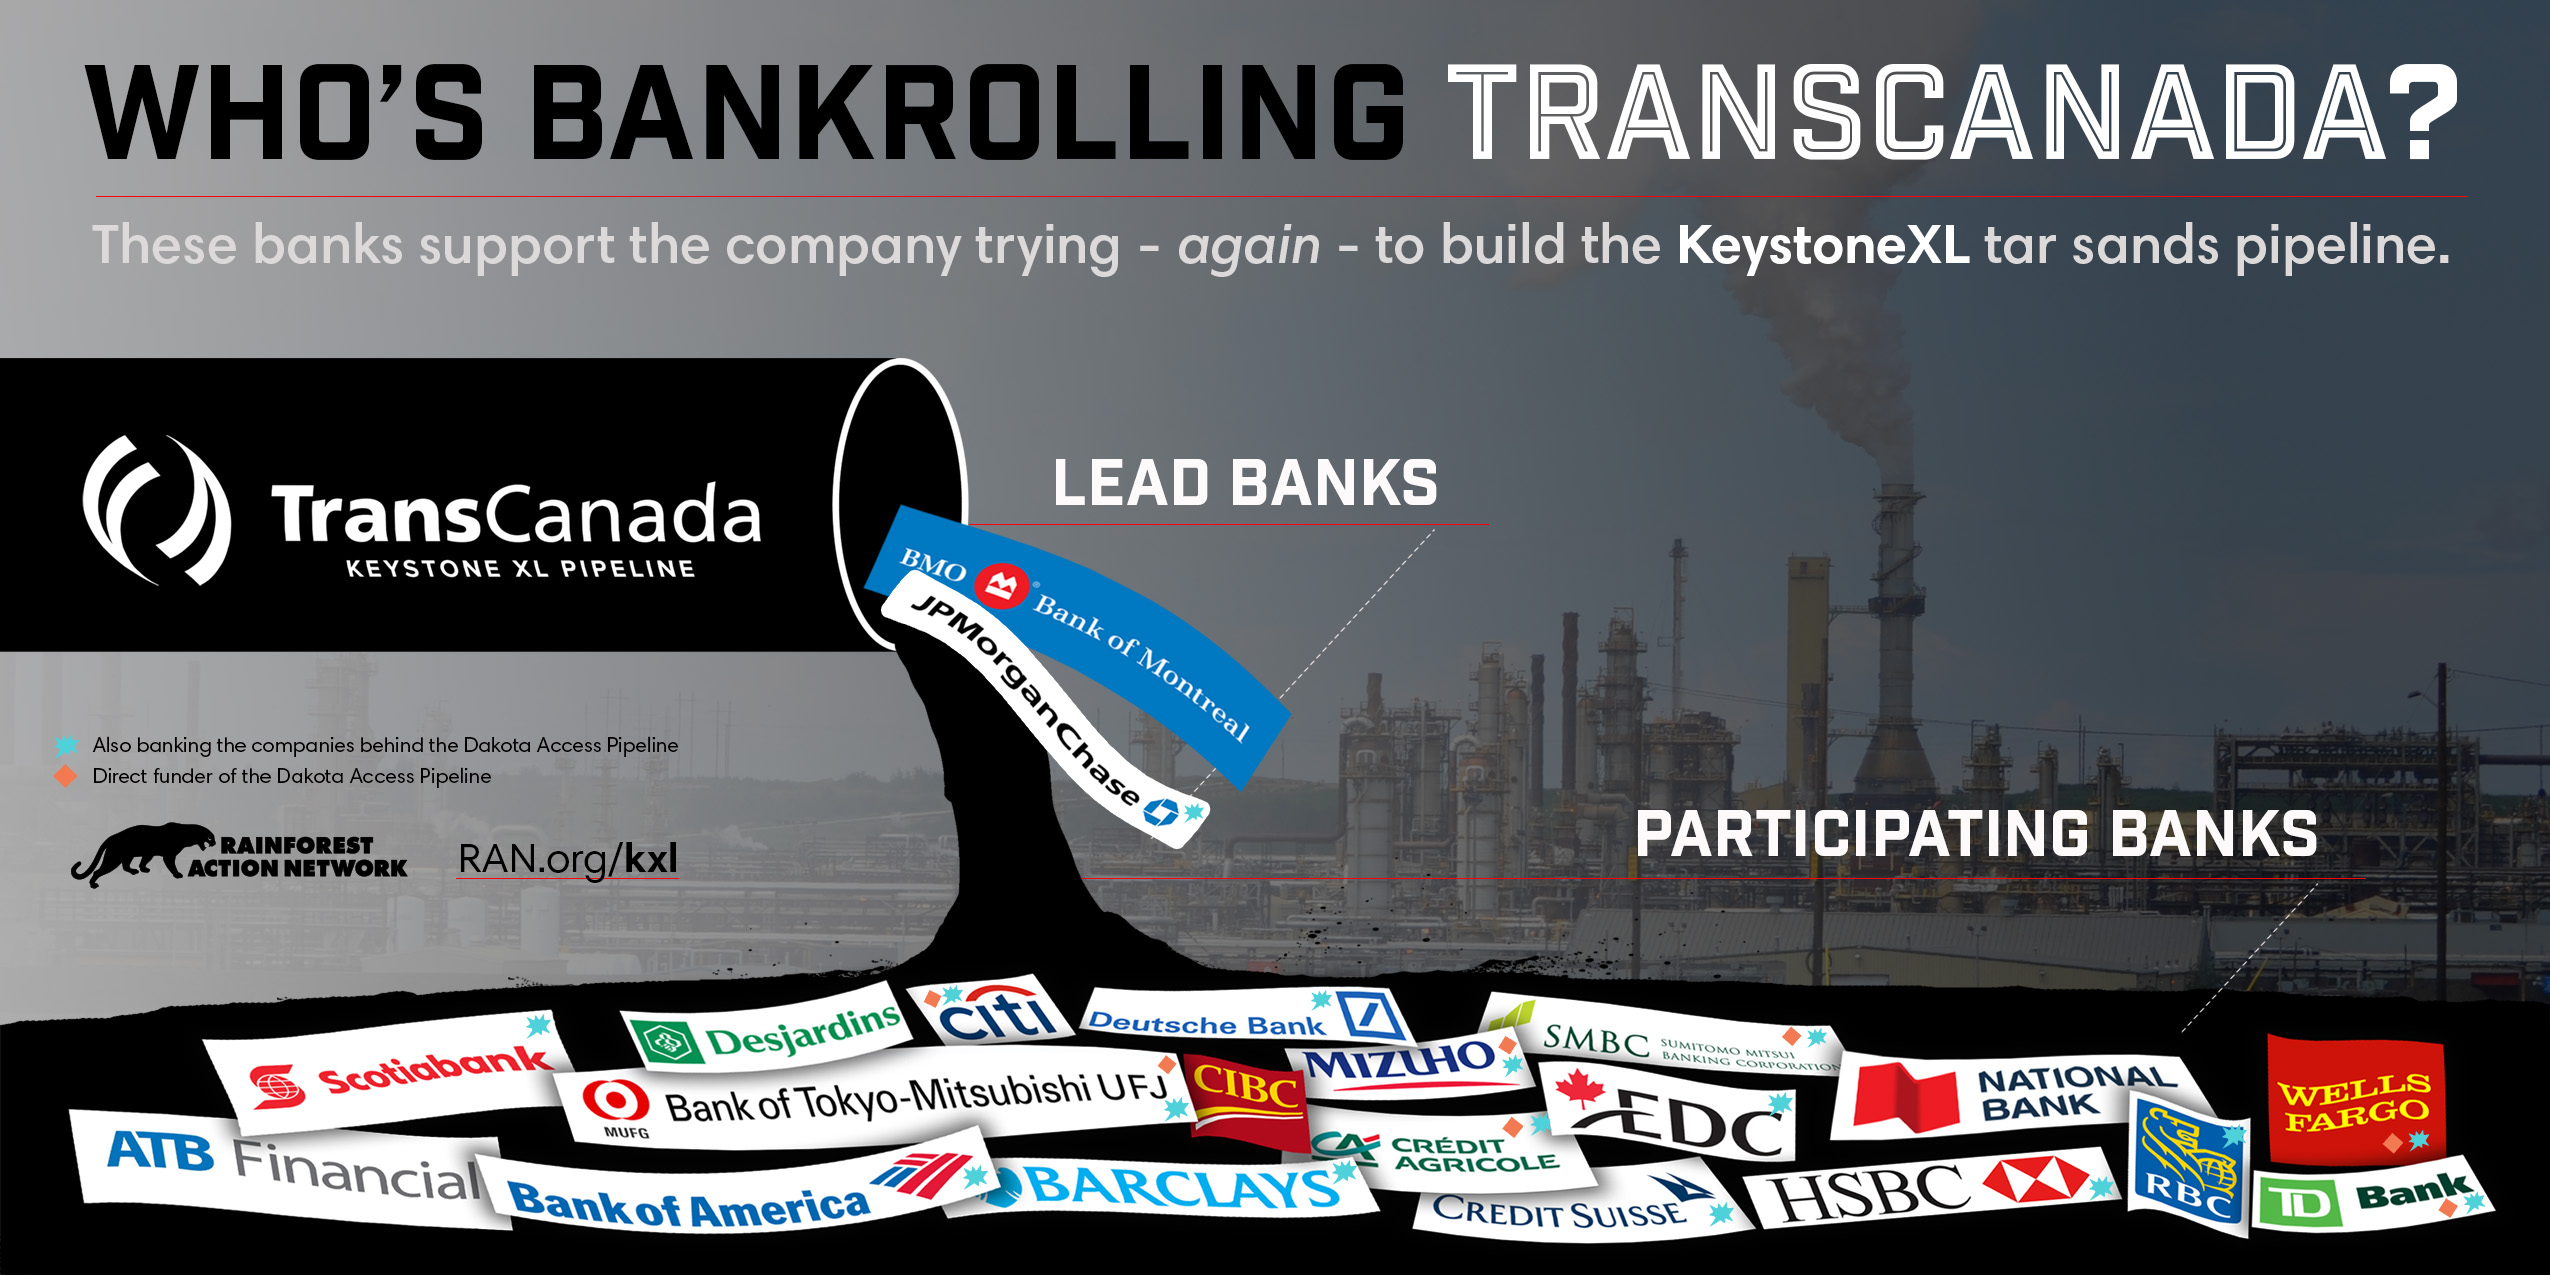 Kxl Banks Infographic Vf on Keystone Xl Pipeline Infographic